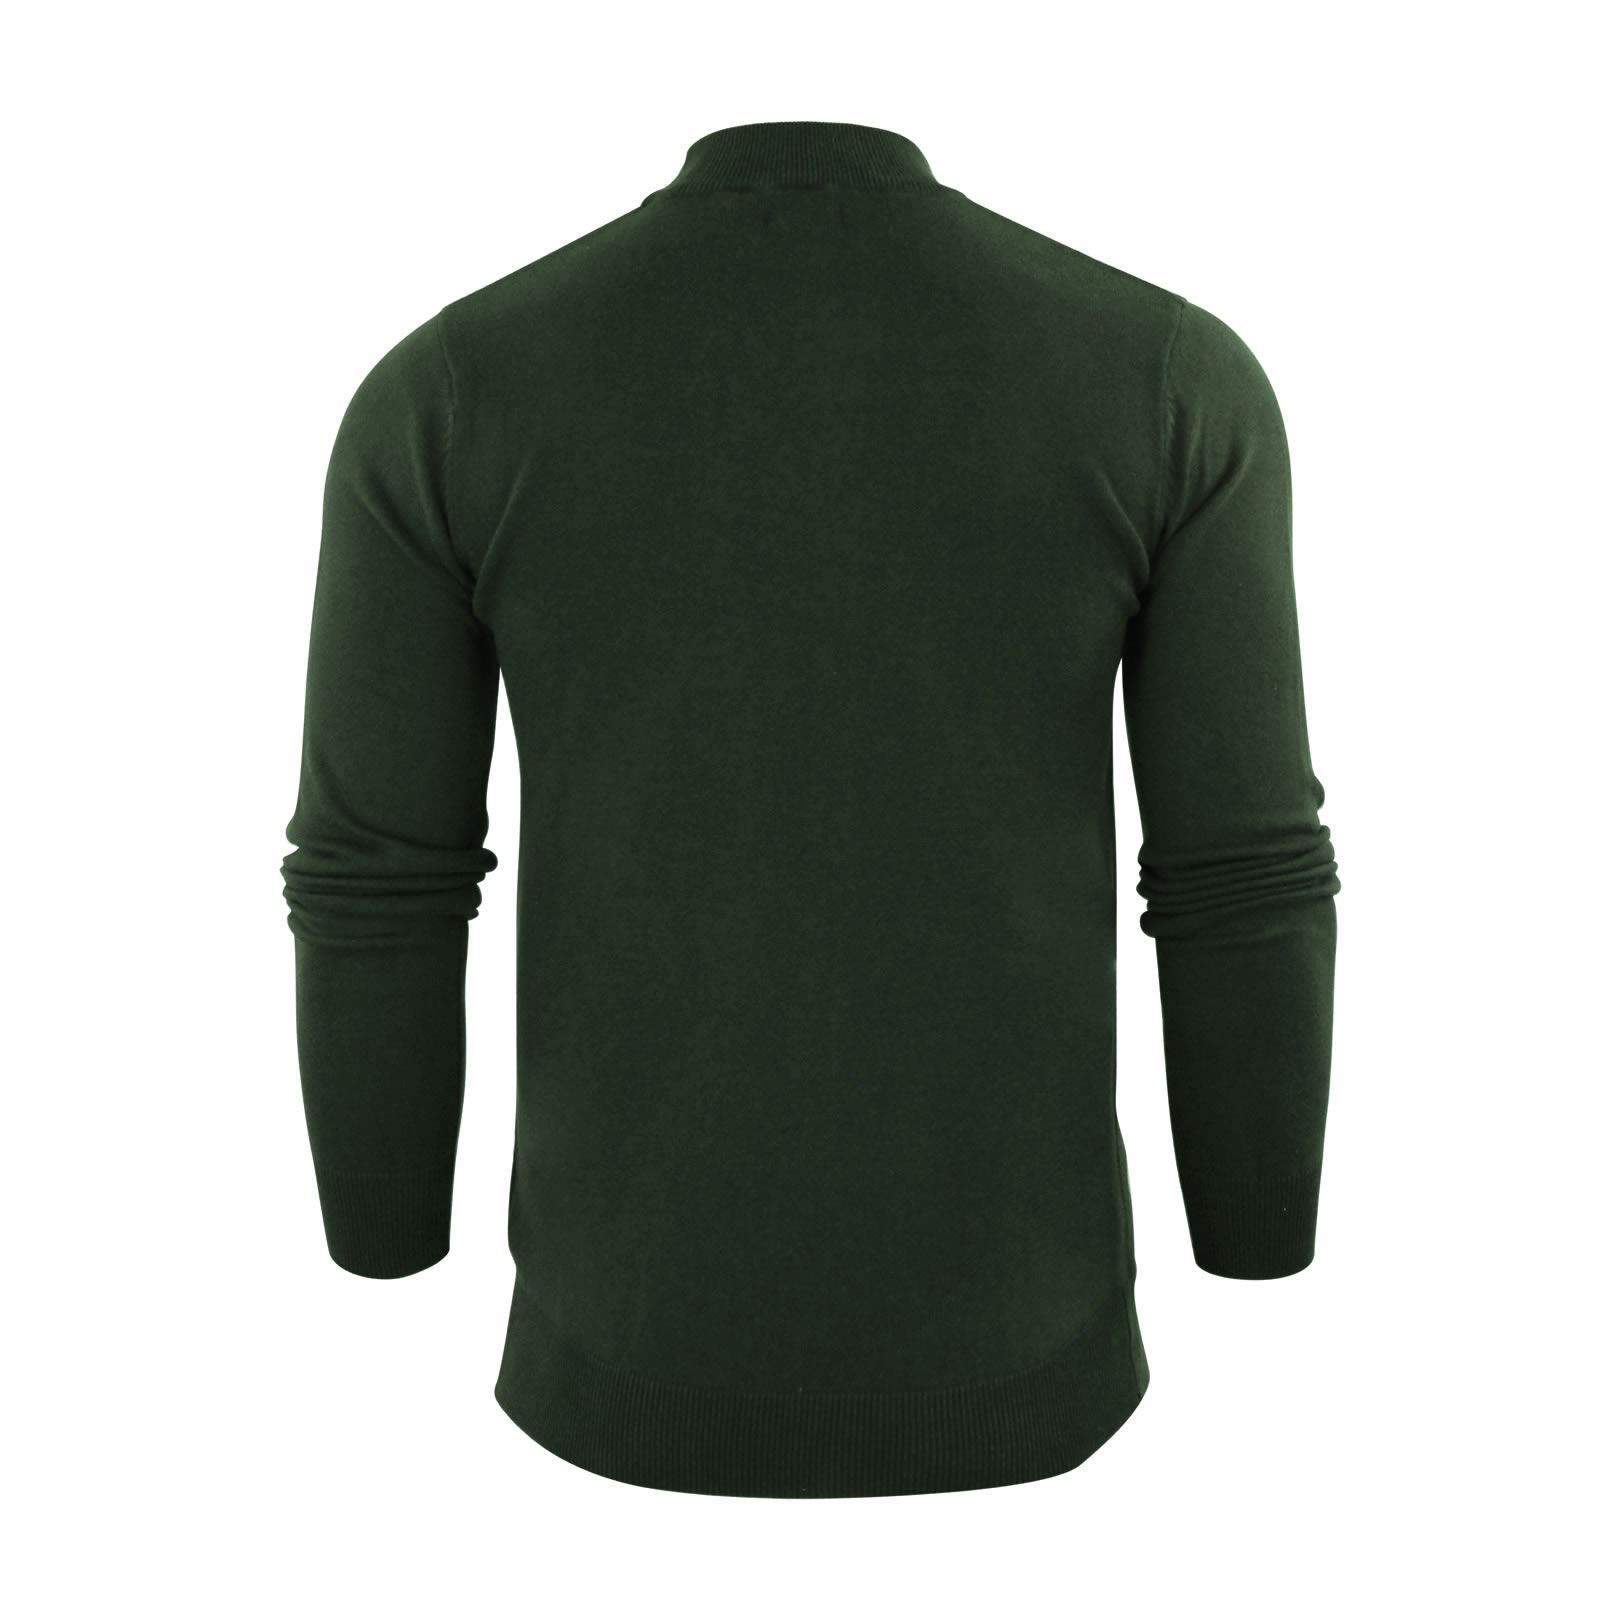 Mens-Jumper-Brave-Soul-Turtle-Neck-Cotton-Pull-Over-Sweater thumbnail 28